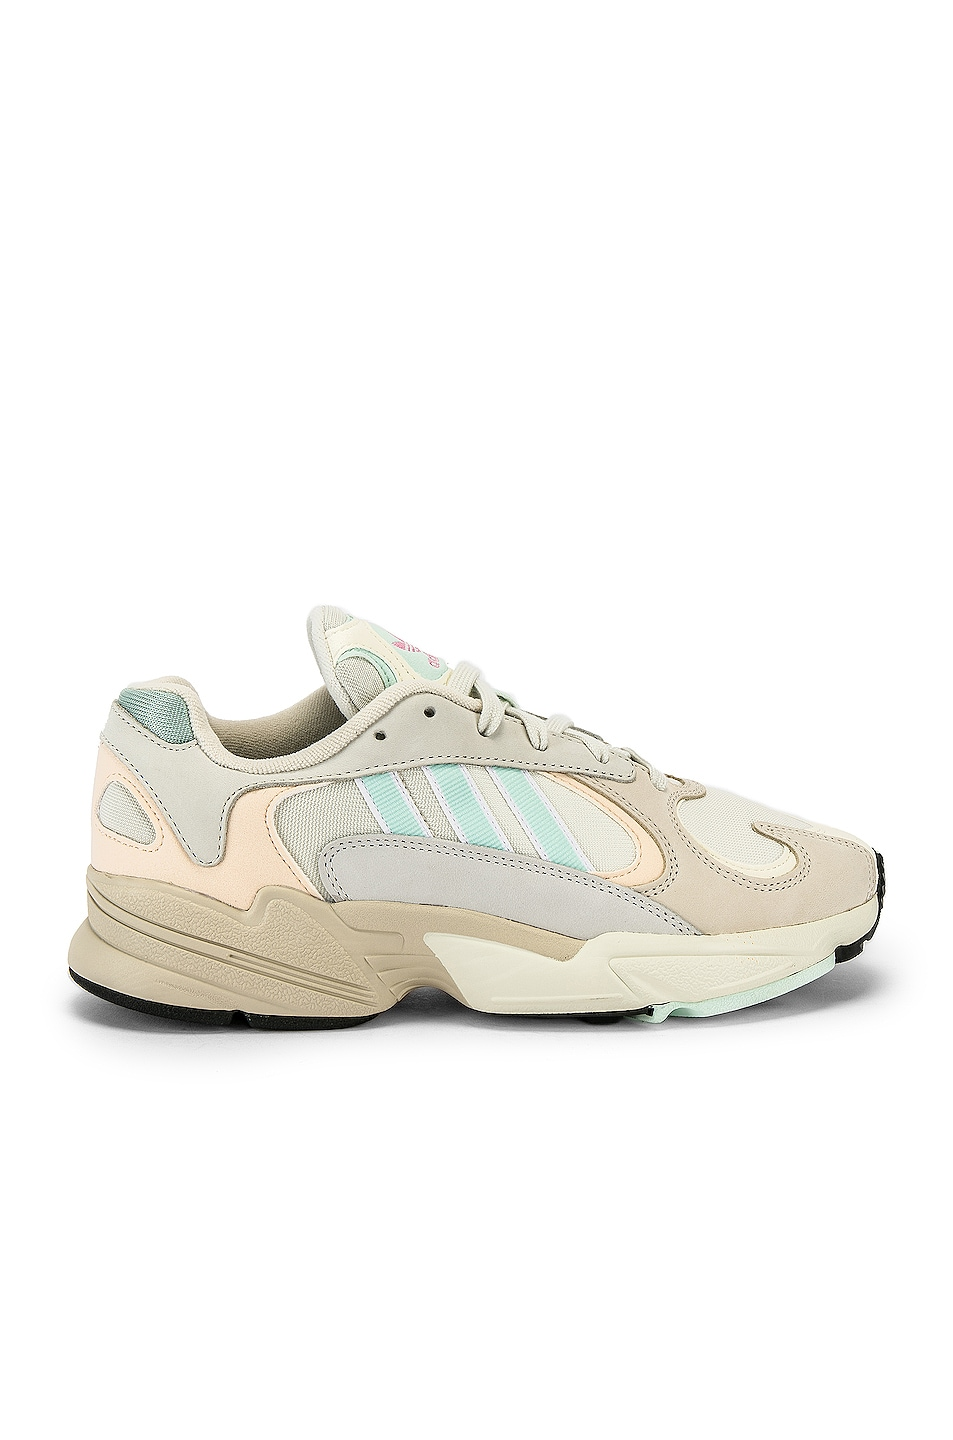 Image 2 of adidas Originals Yung-1 in Off White & Ice